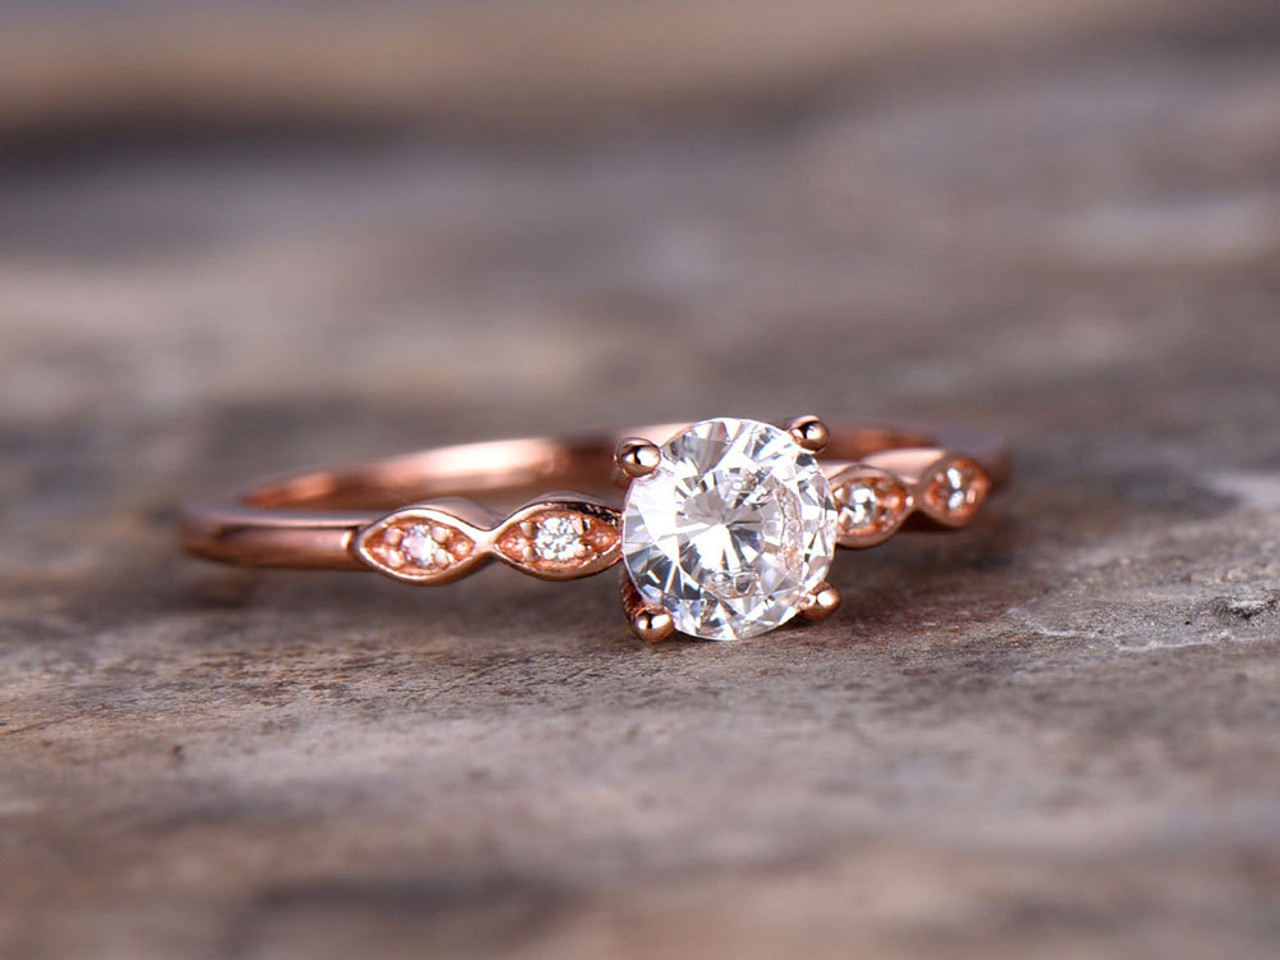 5mm Round Cut Cz Engagement Ring 925 Sterling Silver Wedding Band Rose Gold Plated Simple And Classic Bridal Ring Retro Vintage Pave Set Bbbgem